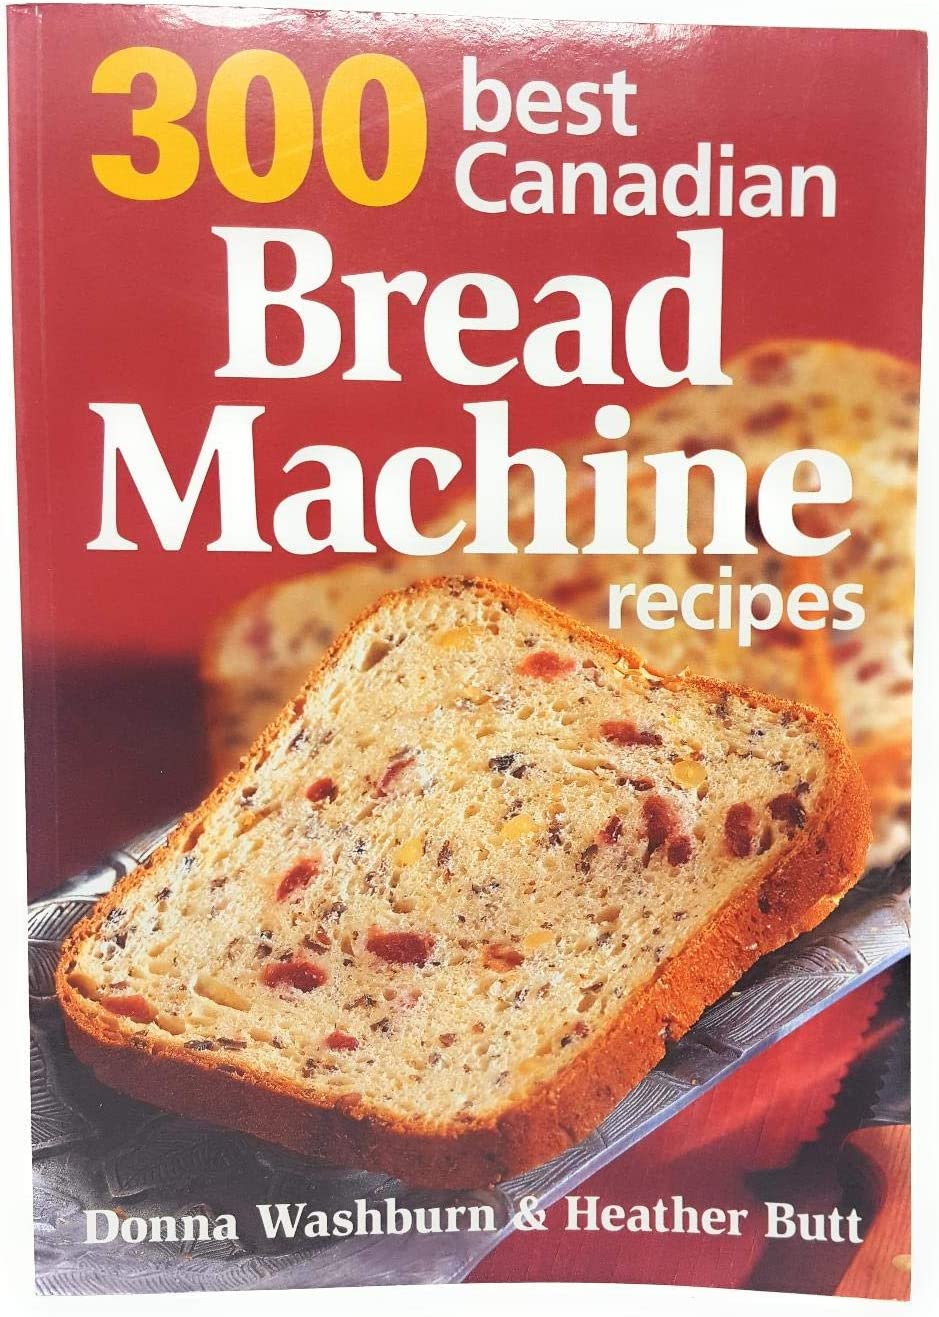 Joie Strawberry Hull /& Slice Bundle with 300 Best Canadian Bread Machine Recipes Paperback